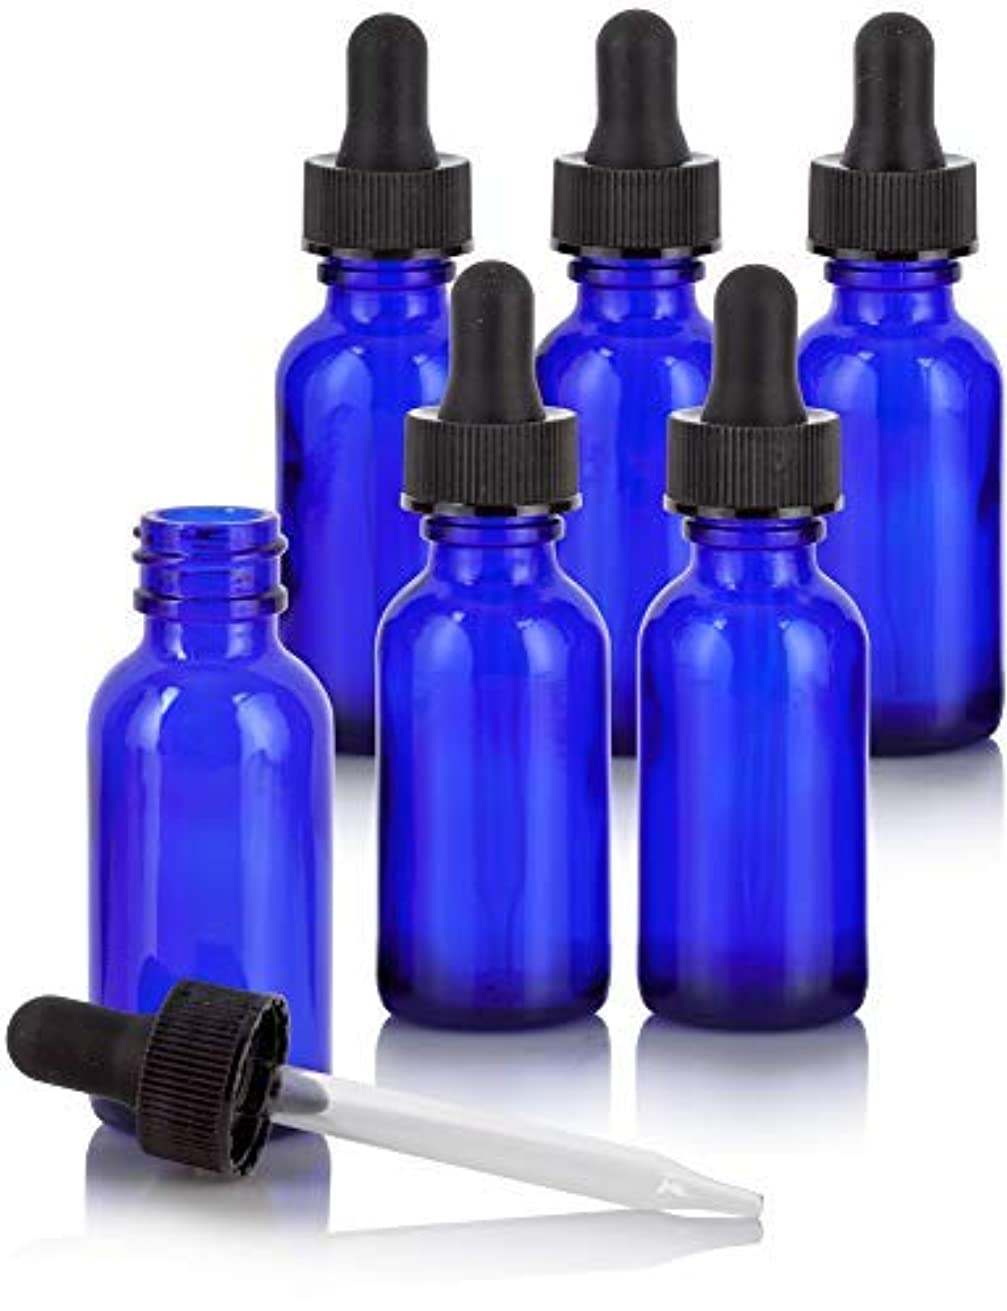 応じる上記の頭と肩十代1 oz Cobalt Blue Glass Boston Round Dropper Bottle (6 Pack) + Funnel and Labels for Essential Oils, Aromatherapy...